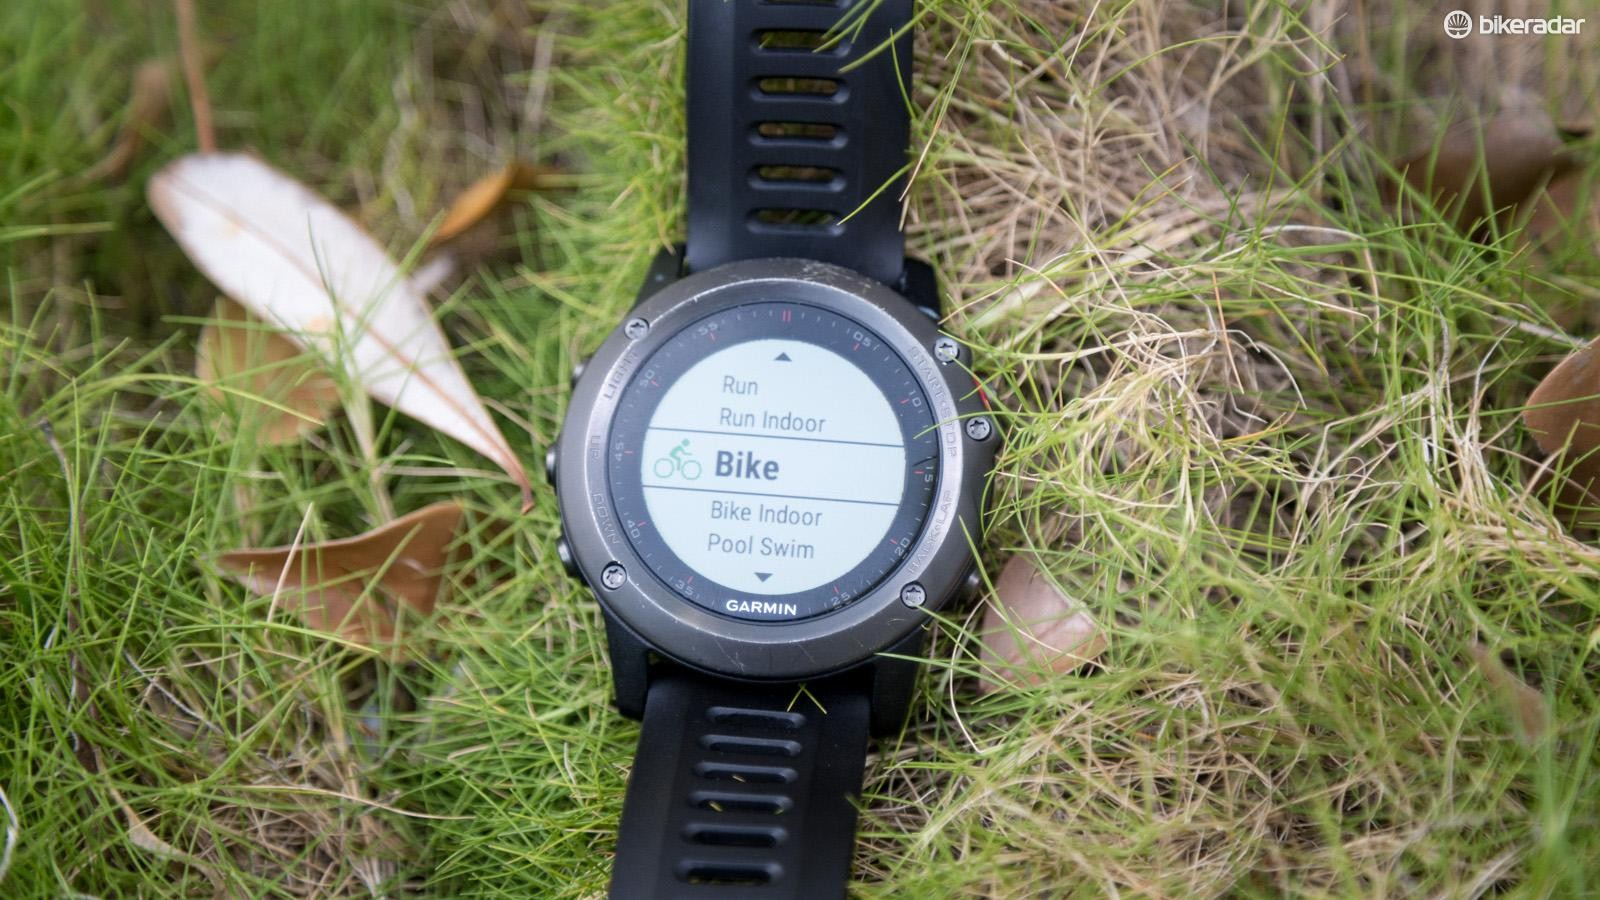 Like the Forerunner 920XT and VivoActive there are plenty of multisport modes